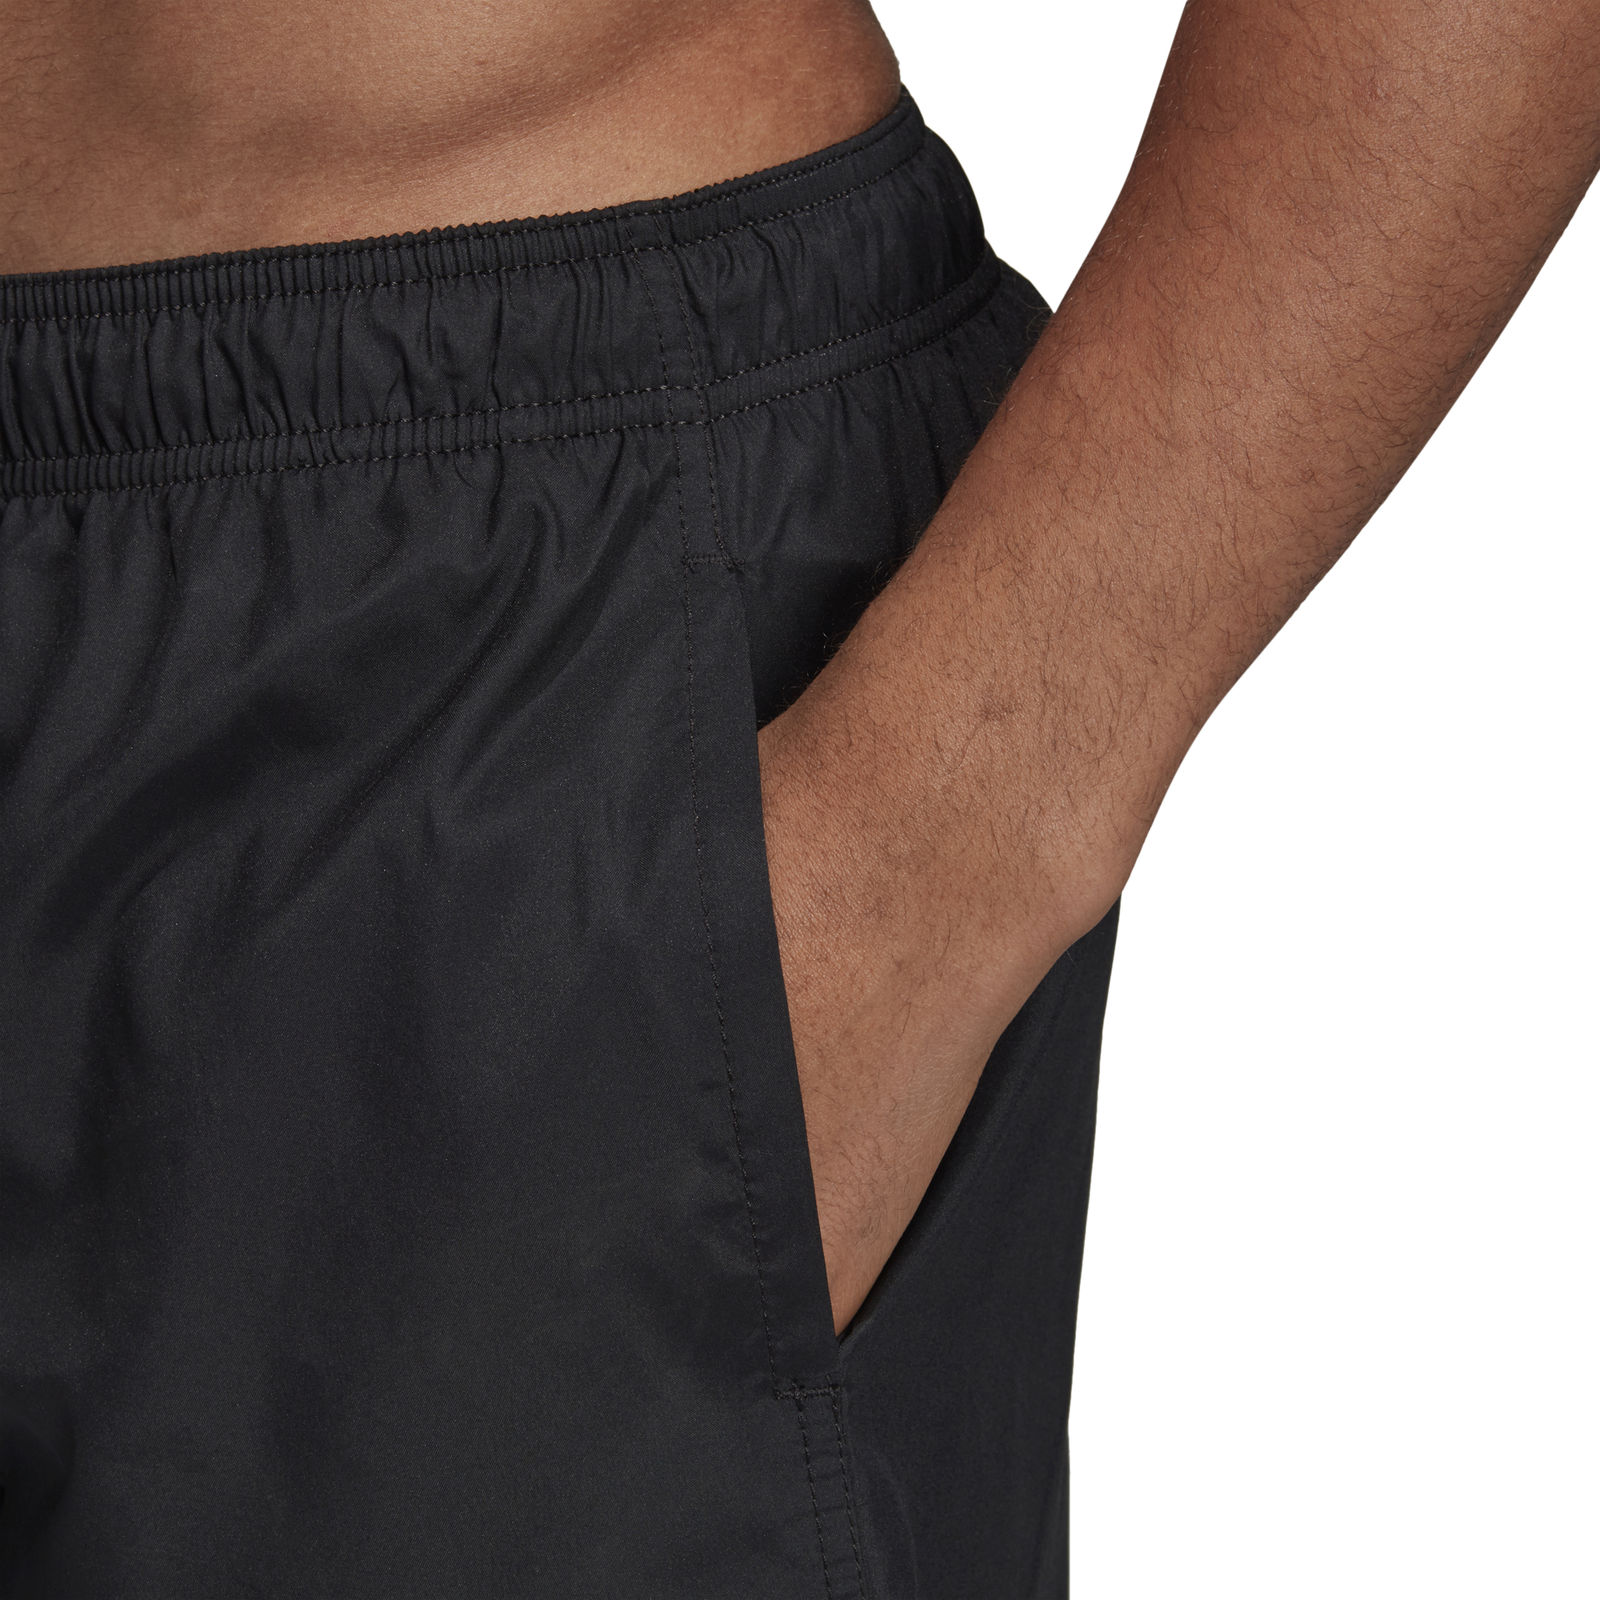 Adidas 3S SH CL Swim Sport Shorts Mens Short BlackWhite